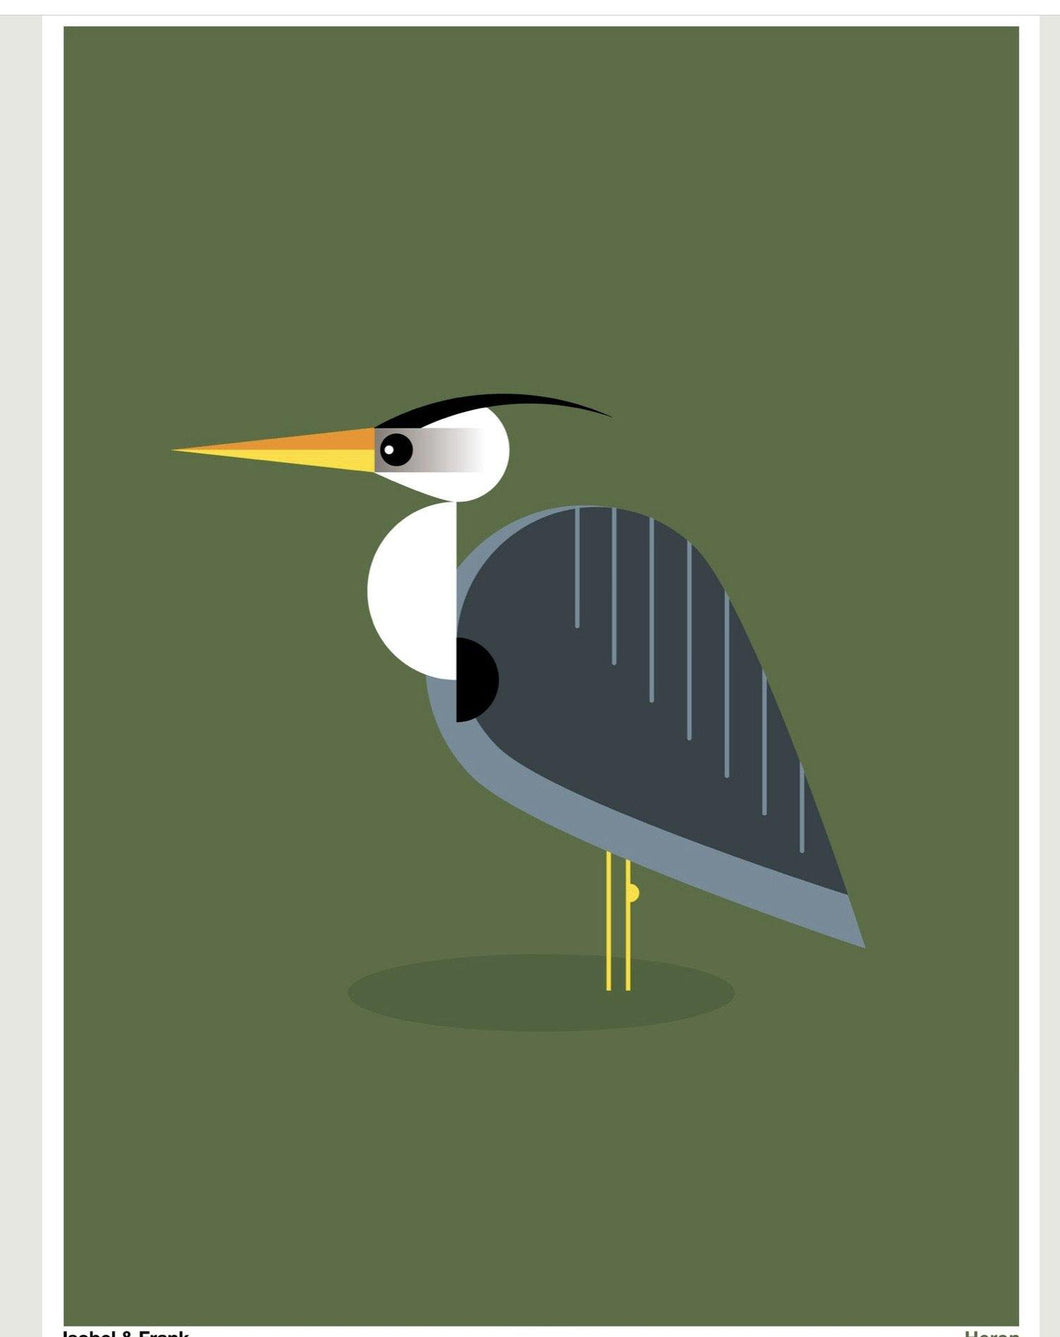 Heron (Framed or Unframed) 30 x 40cm Print - The Coast Office